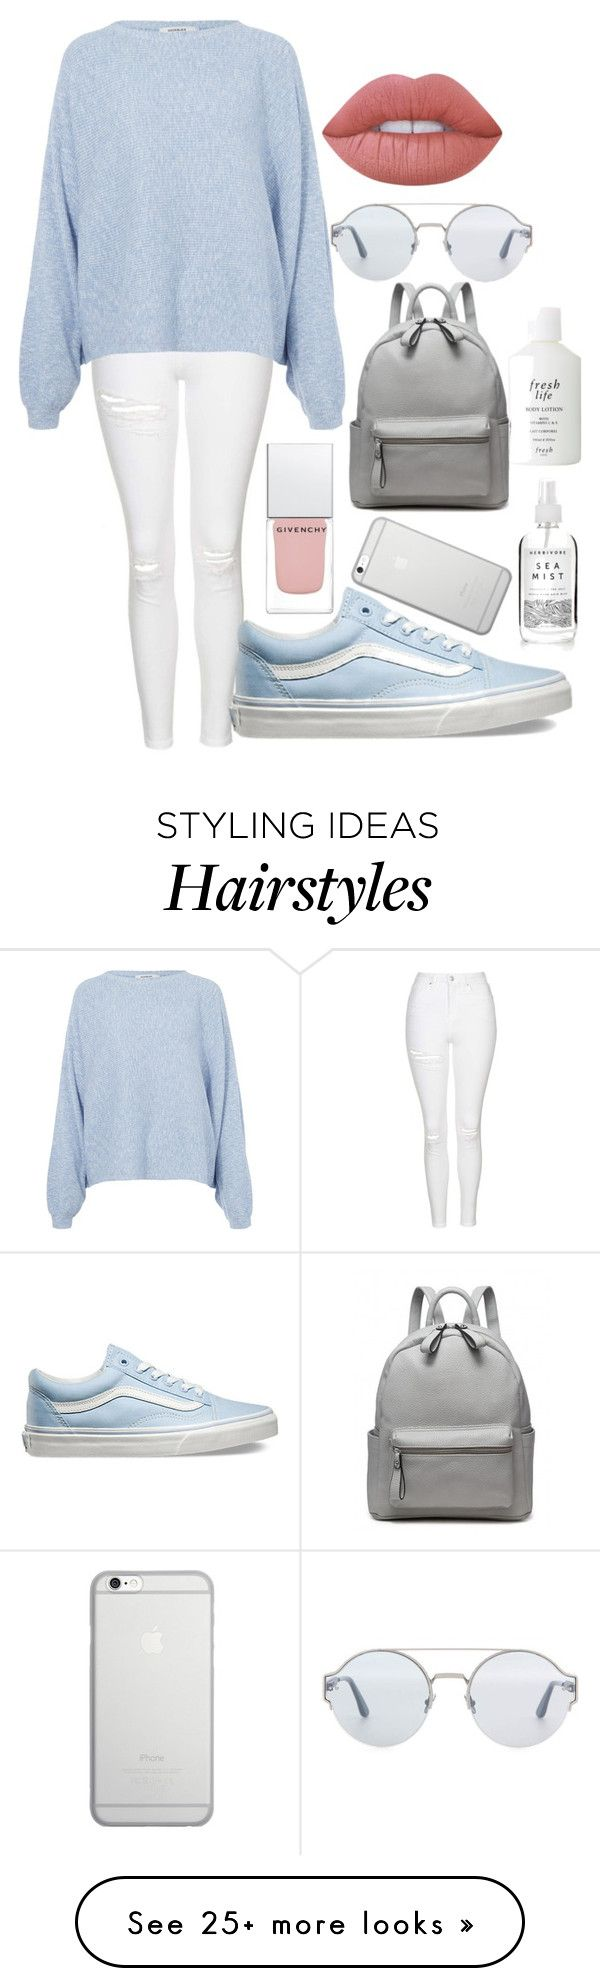 """""""Monday"""" by jilld727 on Polyvore featuring Topshop, Rodebjer, Vans, Native Union, Lime Crime, Givenchy, Bottega Veneta and Fresh"""